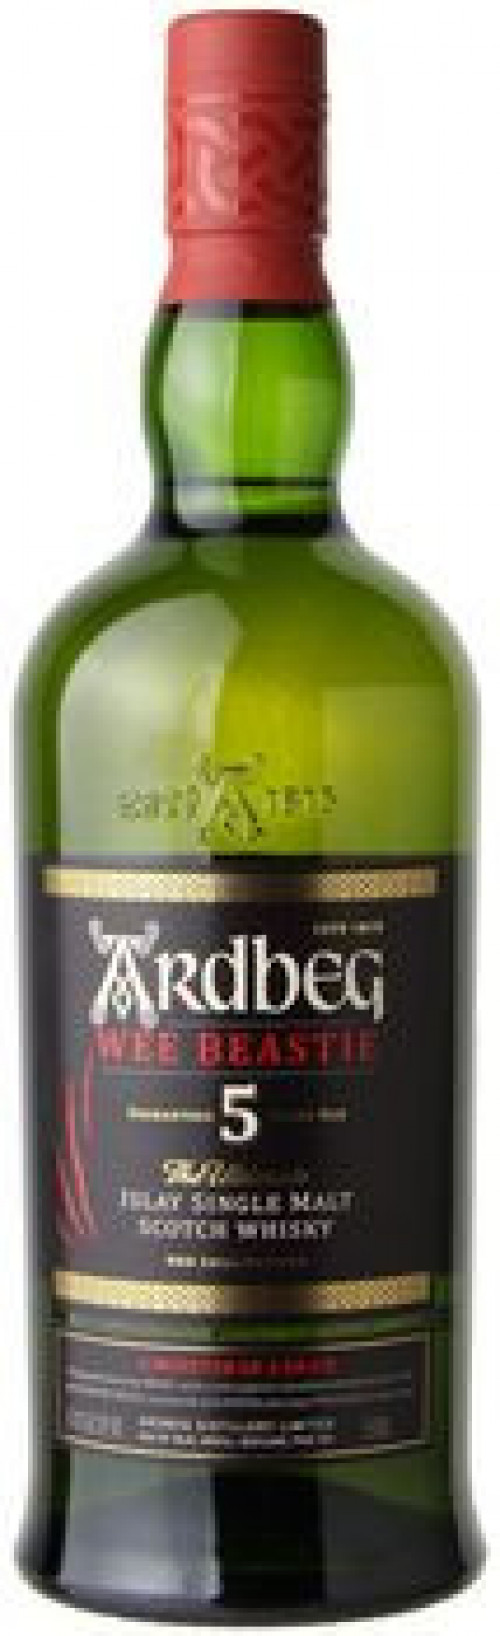 Ardbeg Wee Beastie 5yr Single Malt Scotch 750ml